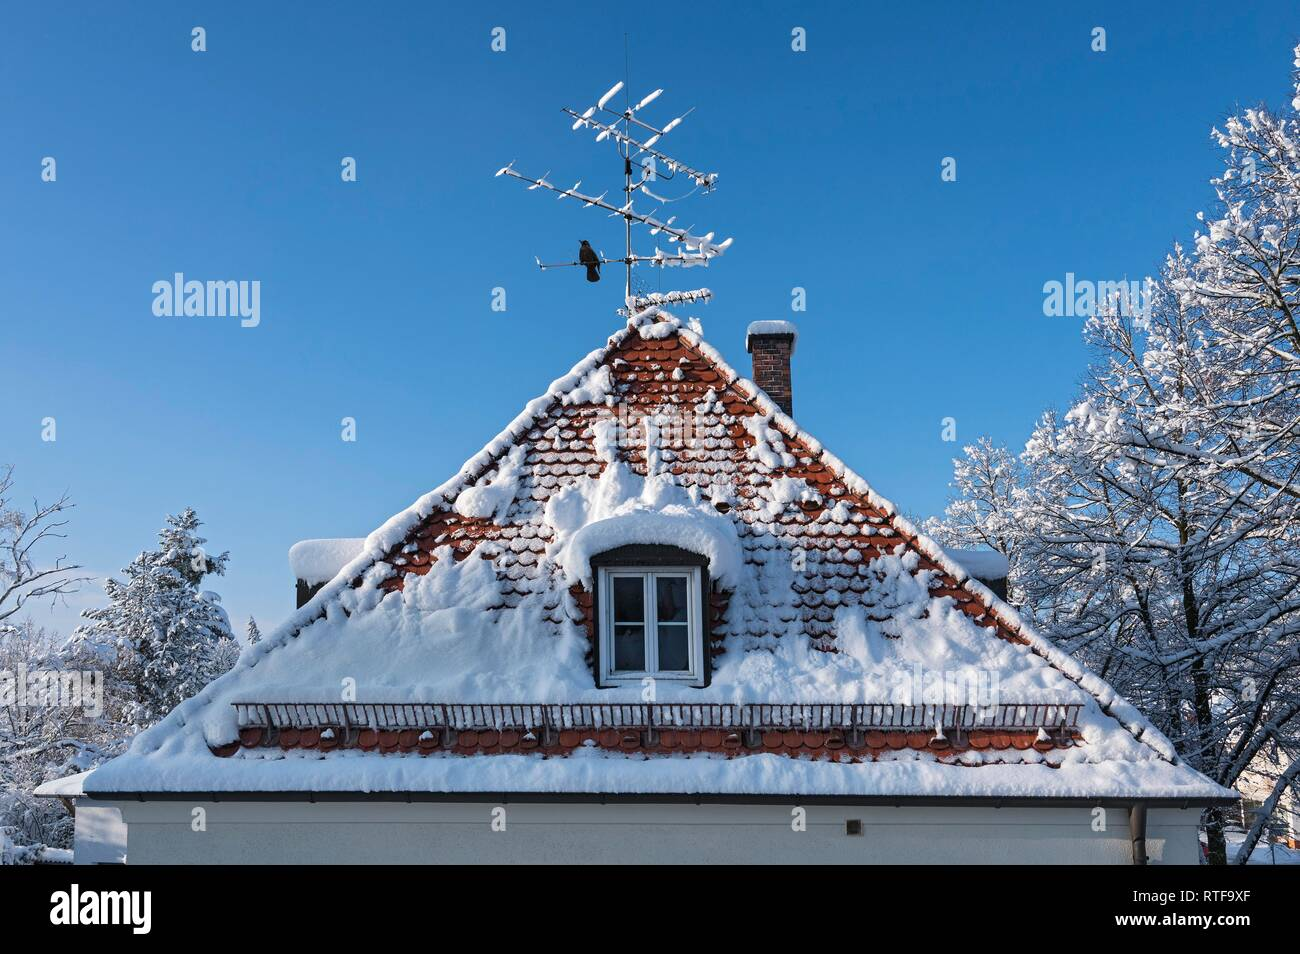 House roof with snow in winter, Munich, Upper Bavaria, Bavaria, Germany - Stock Image